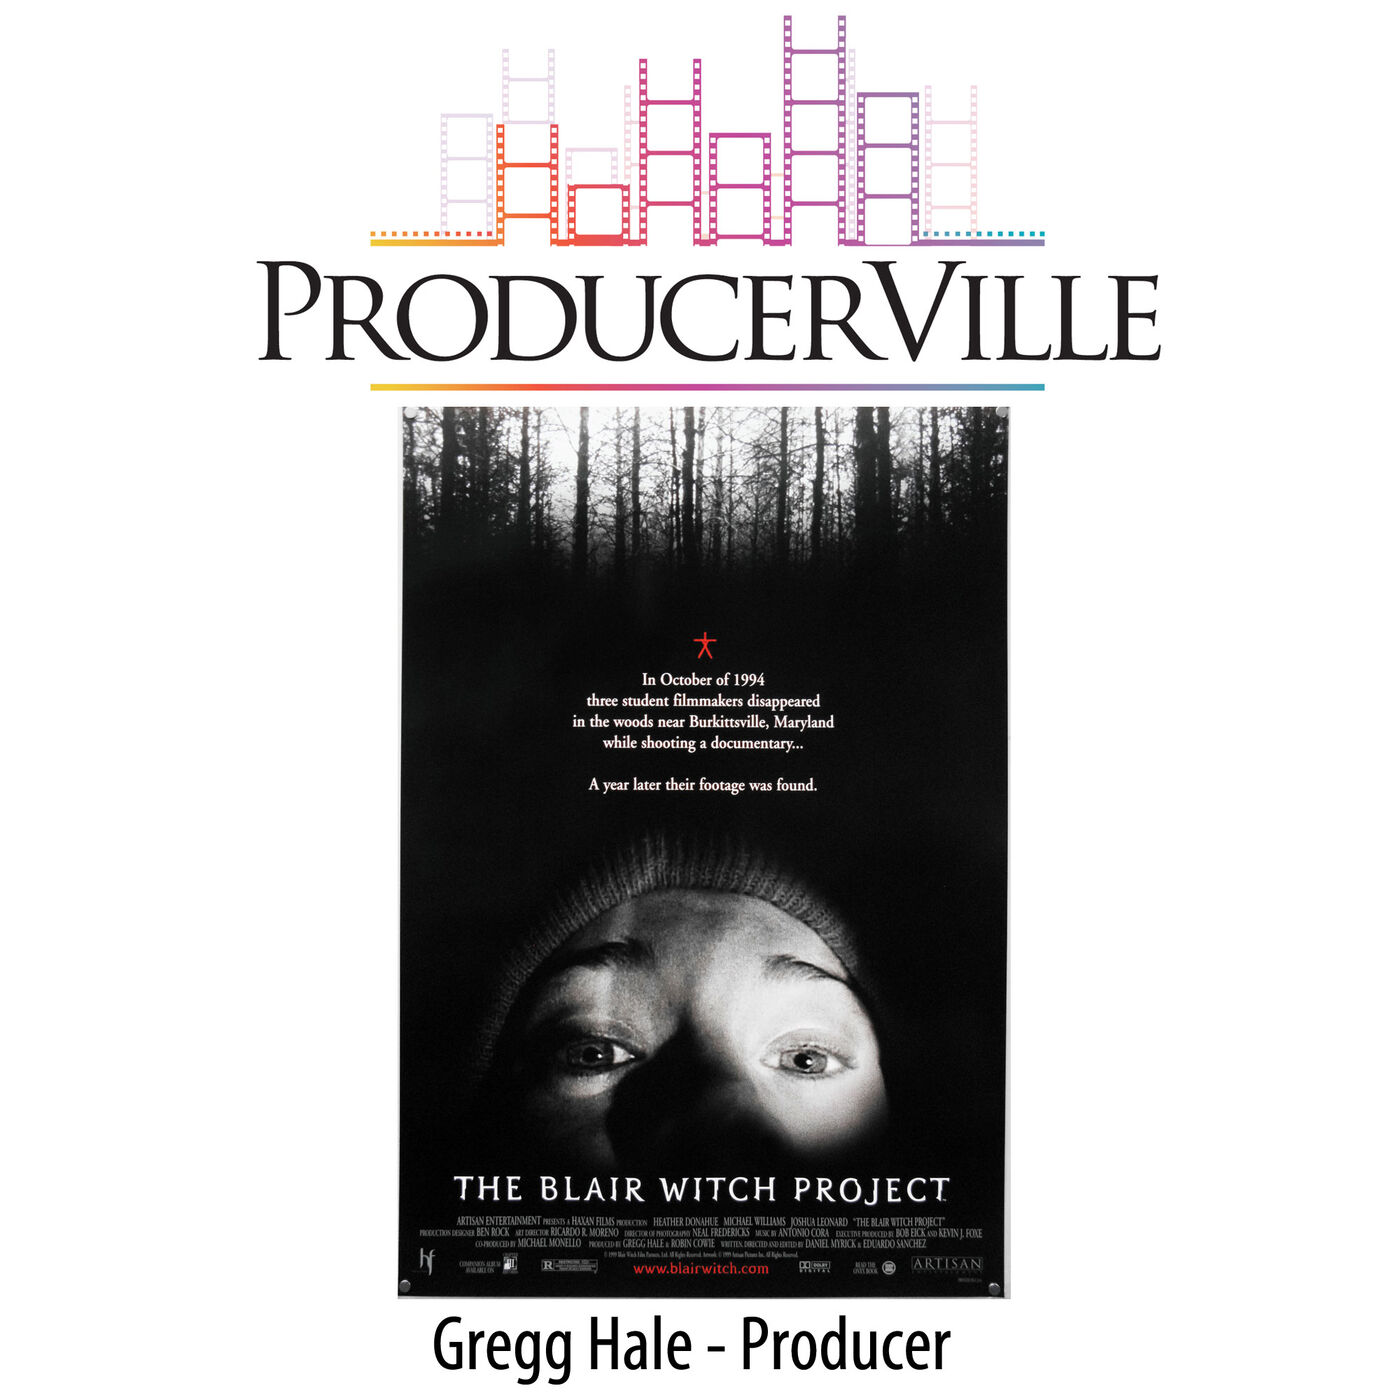 Gregg Hale (THE BLAIR WITCH PROJECT)